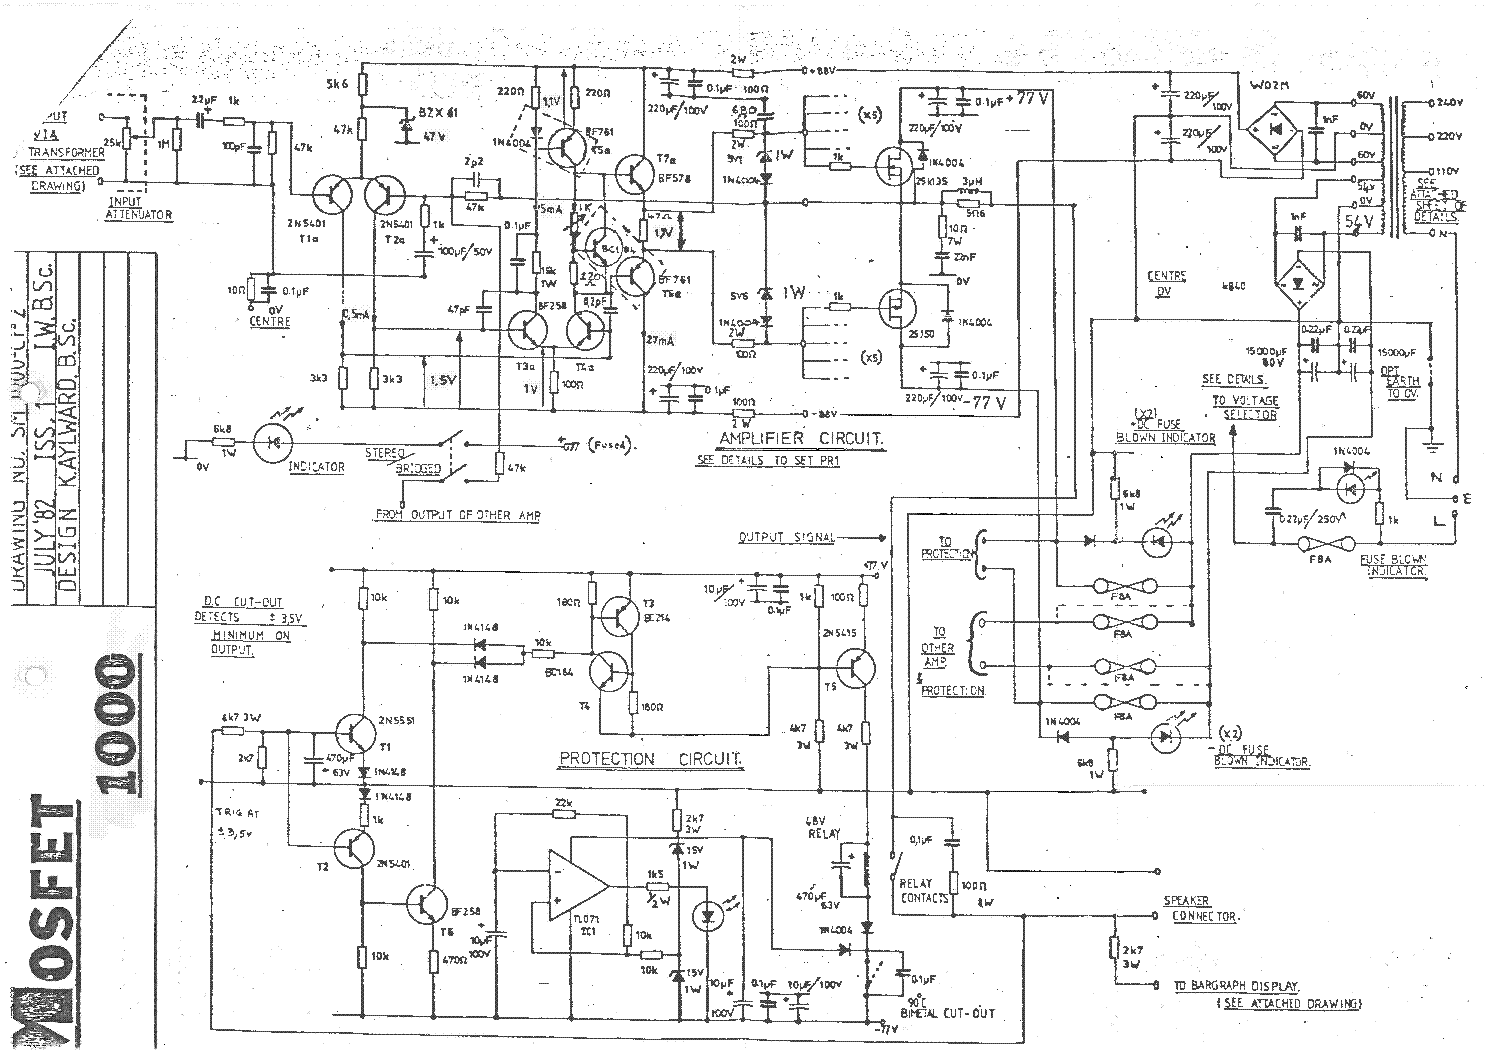 Studio Master Amplifier Circuit Diagram - Studiomaster 500 1000 Amplifier  Sch Service Manual - Studio Master